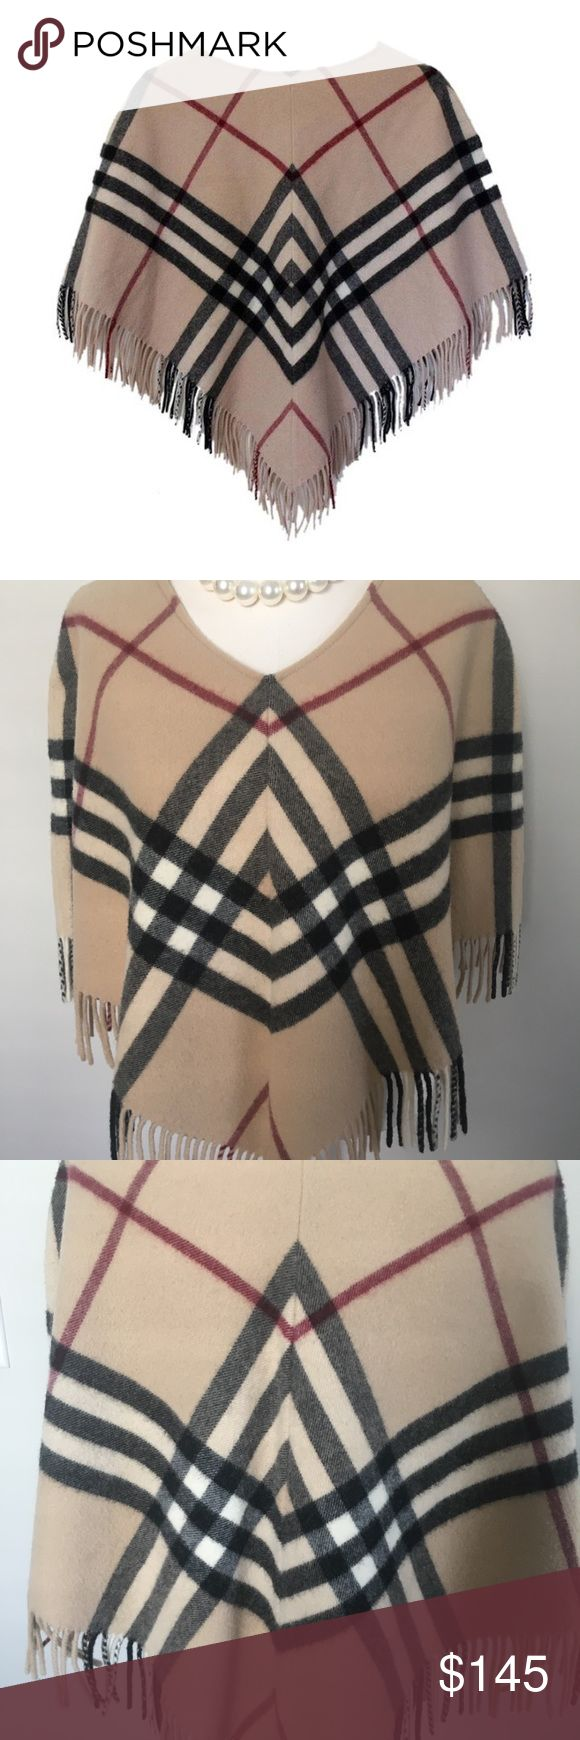 """Burberry Nova Check-Camel Red Black Poncho Authentic Burberry timeless Nova Check Fringed Poncho in their signature Camel Red & Black Check.   100% Lambswool, Made in England. Dry clean only  Looks amazing with white shirt, jeans and heels.   Any season! Purchased in Bloomingdales NYC  One size. 17"""" length but wears short, hits at the waist. Burberry Jackets & Coats Capes"""